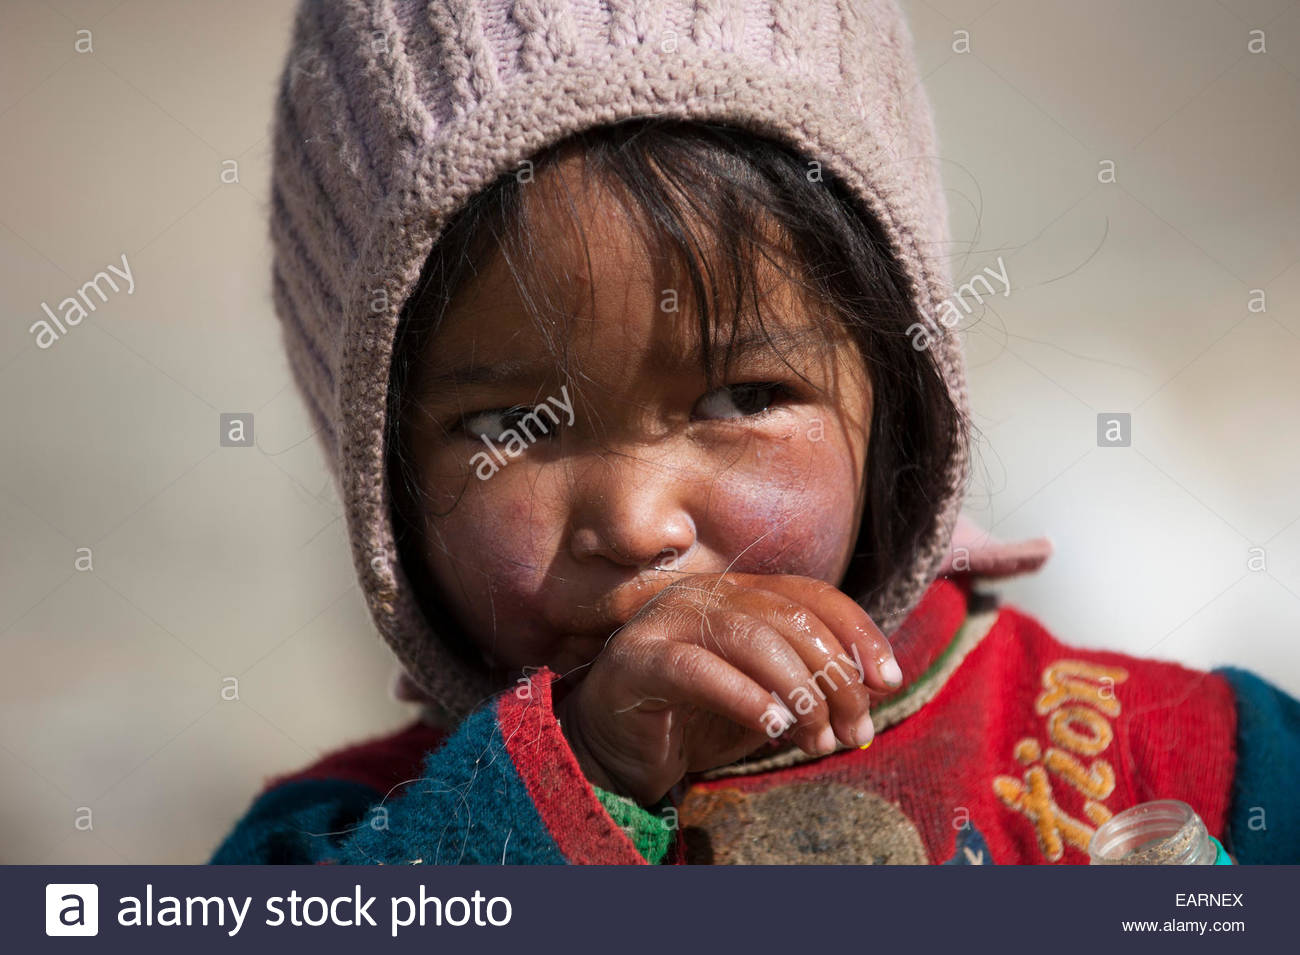 A little nomad shows the effects of exposure in her weathered face. - Stock Image